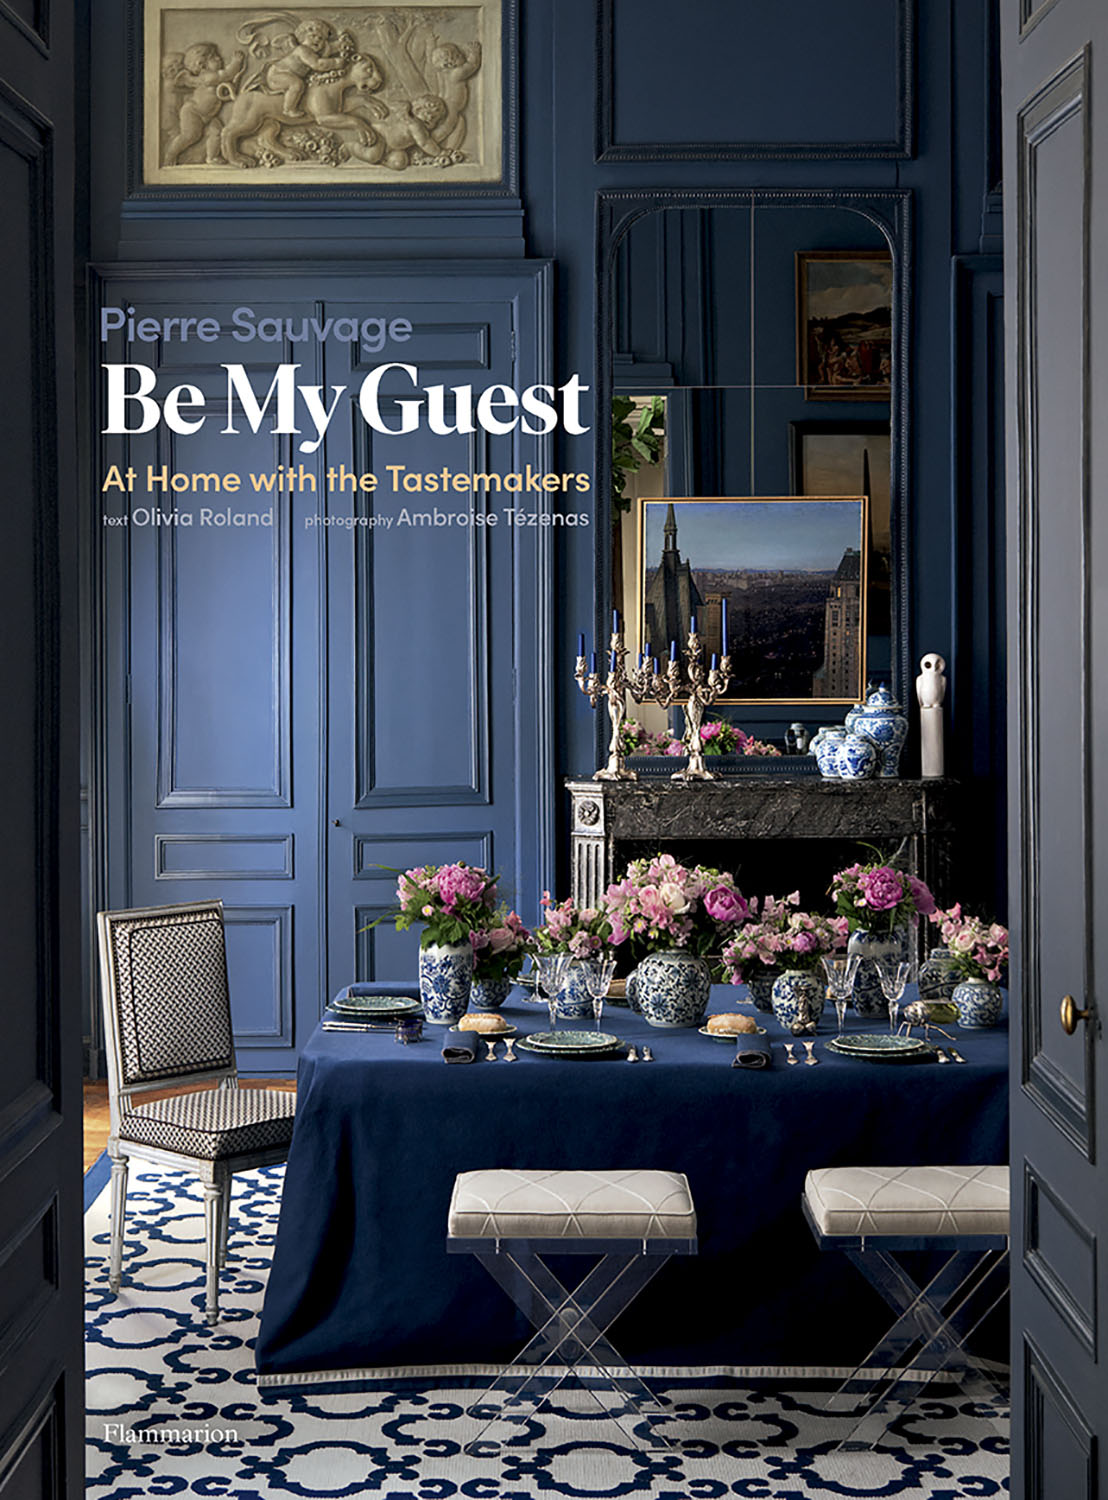 book cover for Be My Guest: At Home with the Tastemakers by Pierre Sauvage and Olivia Roland (Flammarion, 2020)